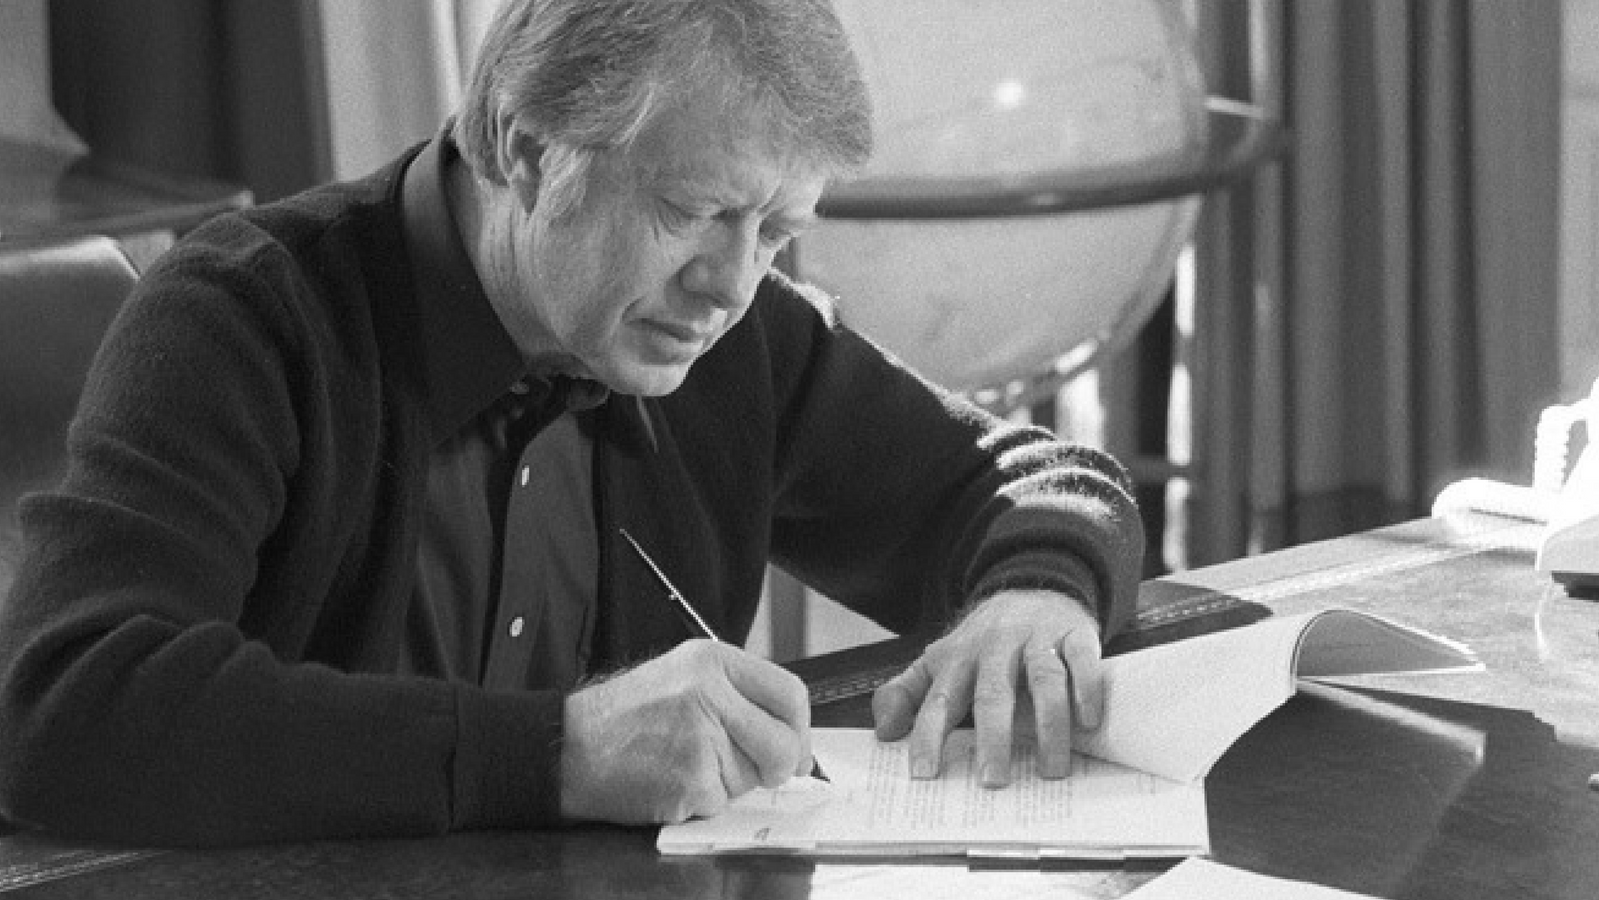 President Carter signs a document.